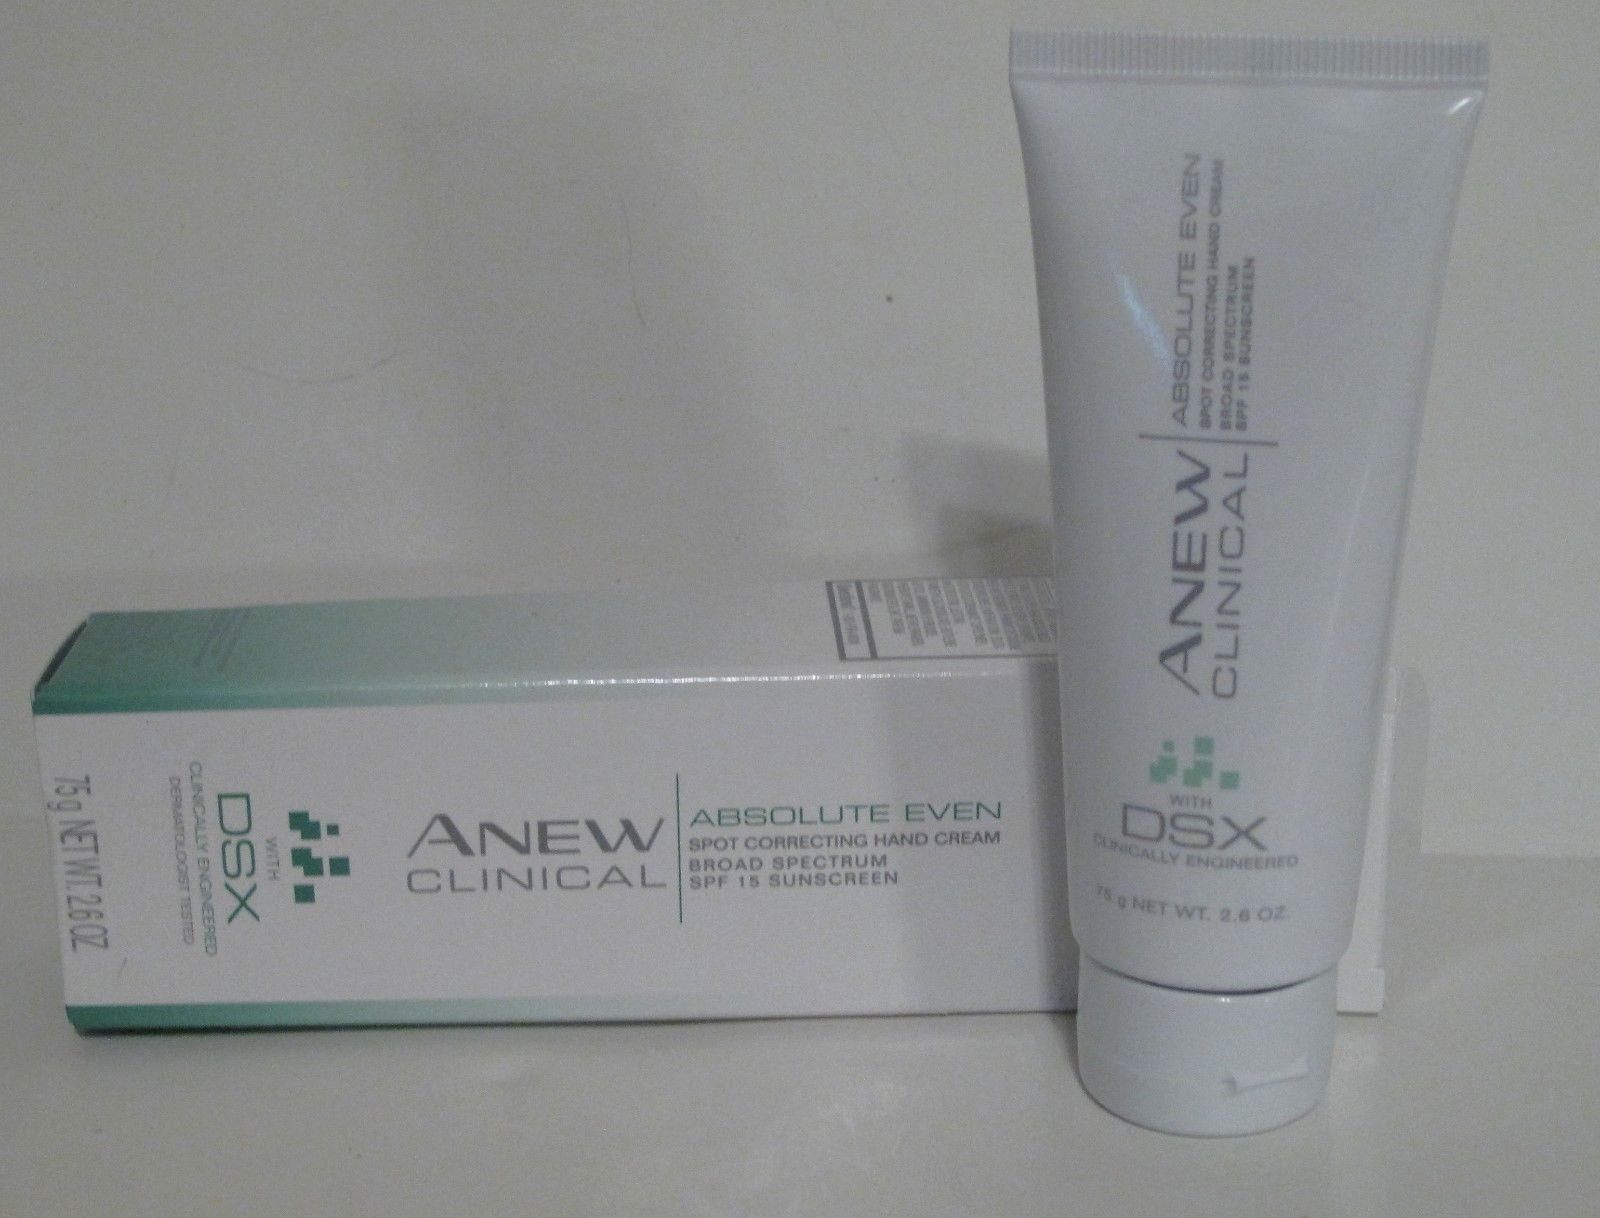 Absolute Even Spot Correcting Hand Cream from Avon Anew Clinical 2.6 oz